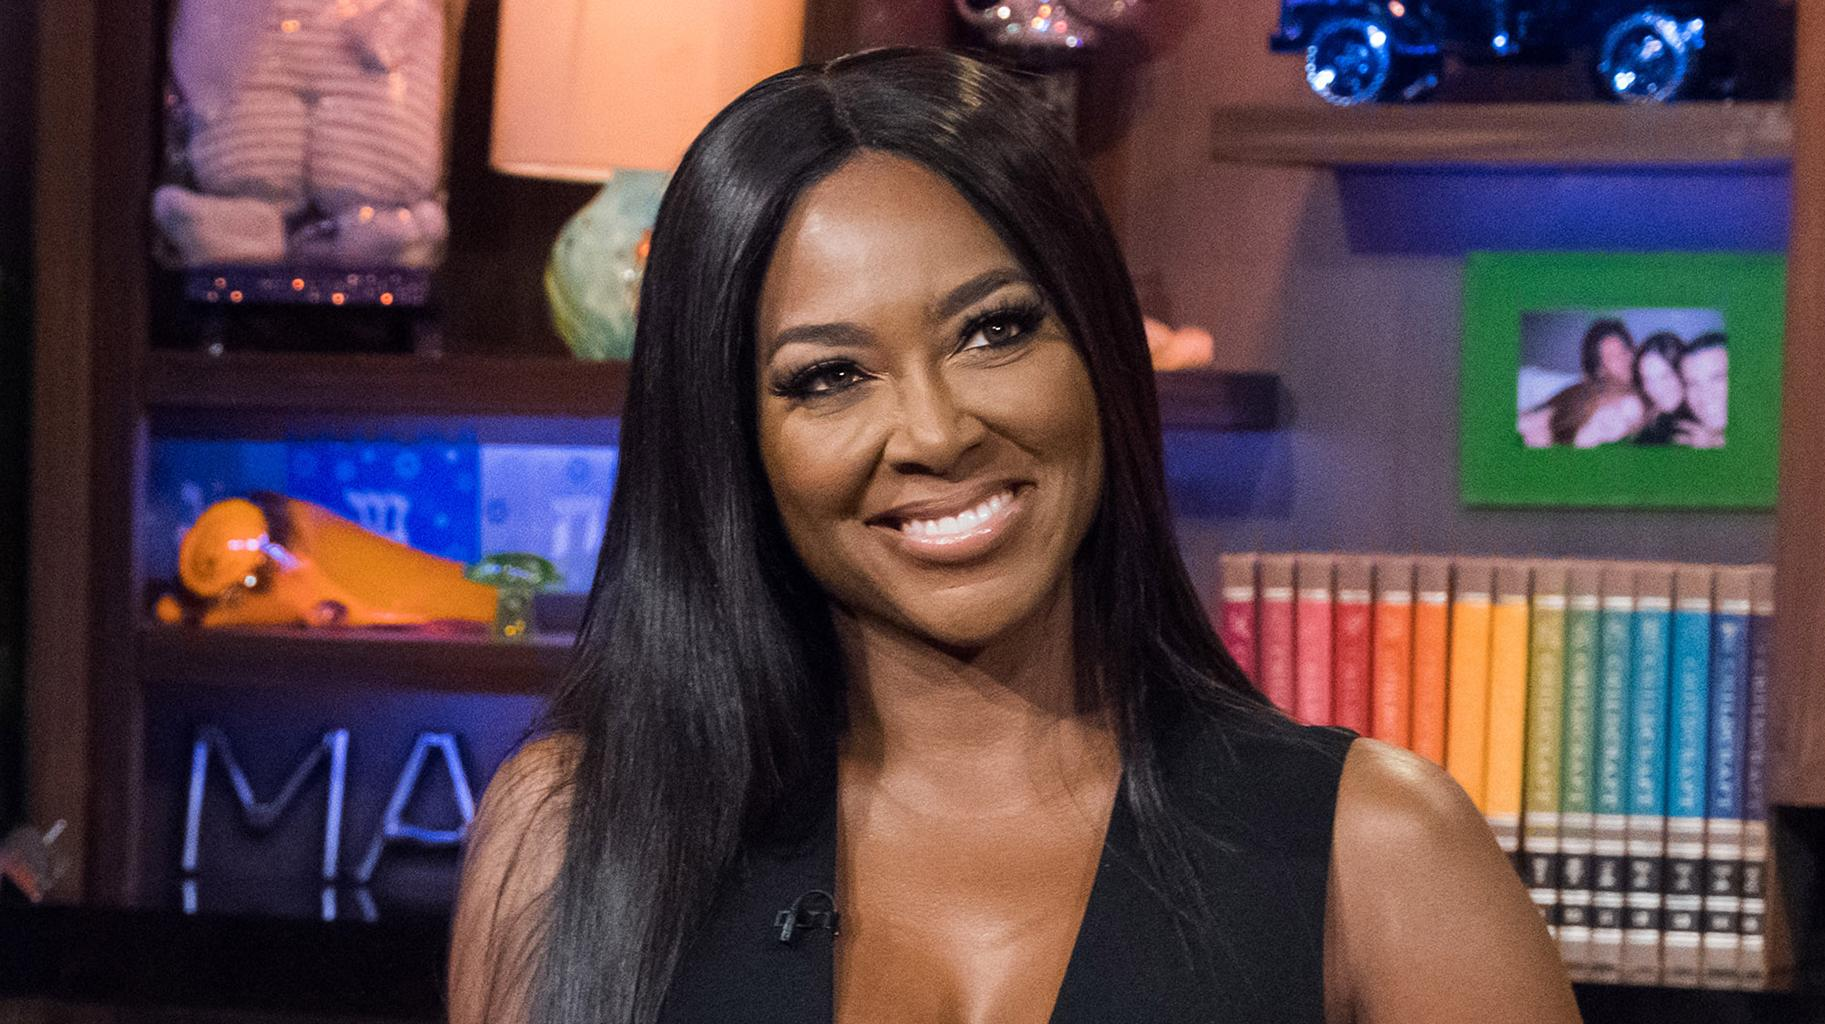 Kenya Moore's Baby Girl Is Slowly But Surely Becoming A Model - Check Out Her Gorgeous Look!